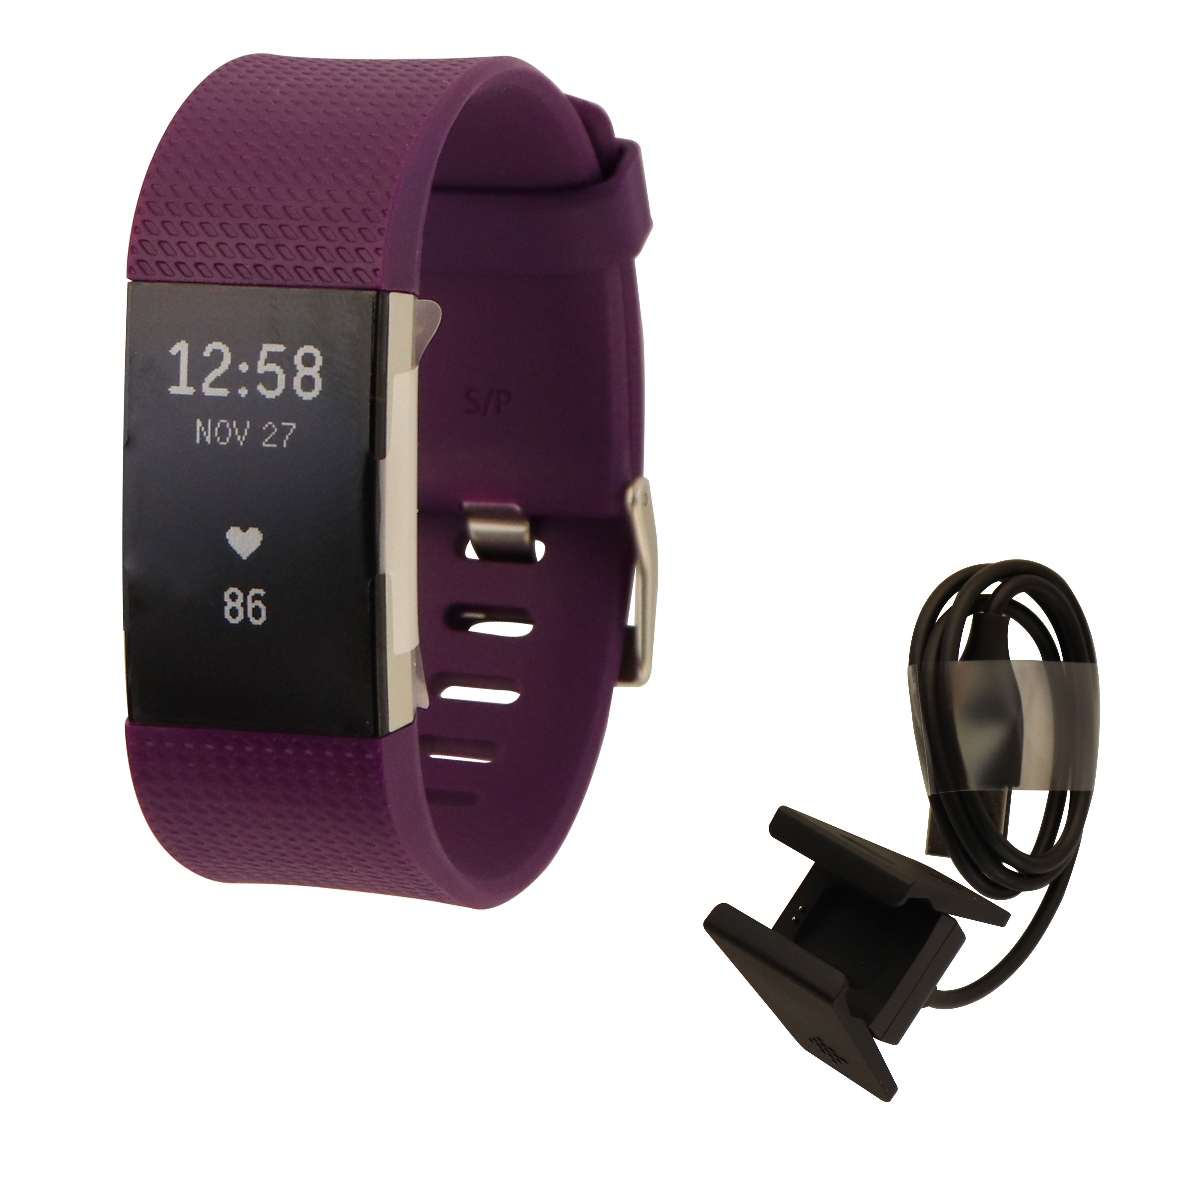 Fitbit Charge 2 Heart Rate + Fitness Wristband Watch, Plum, Small (US Version)